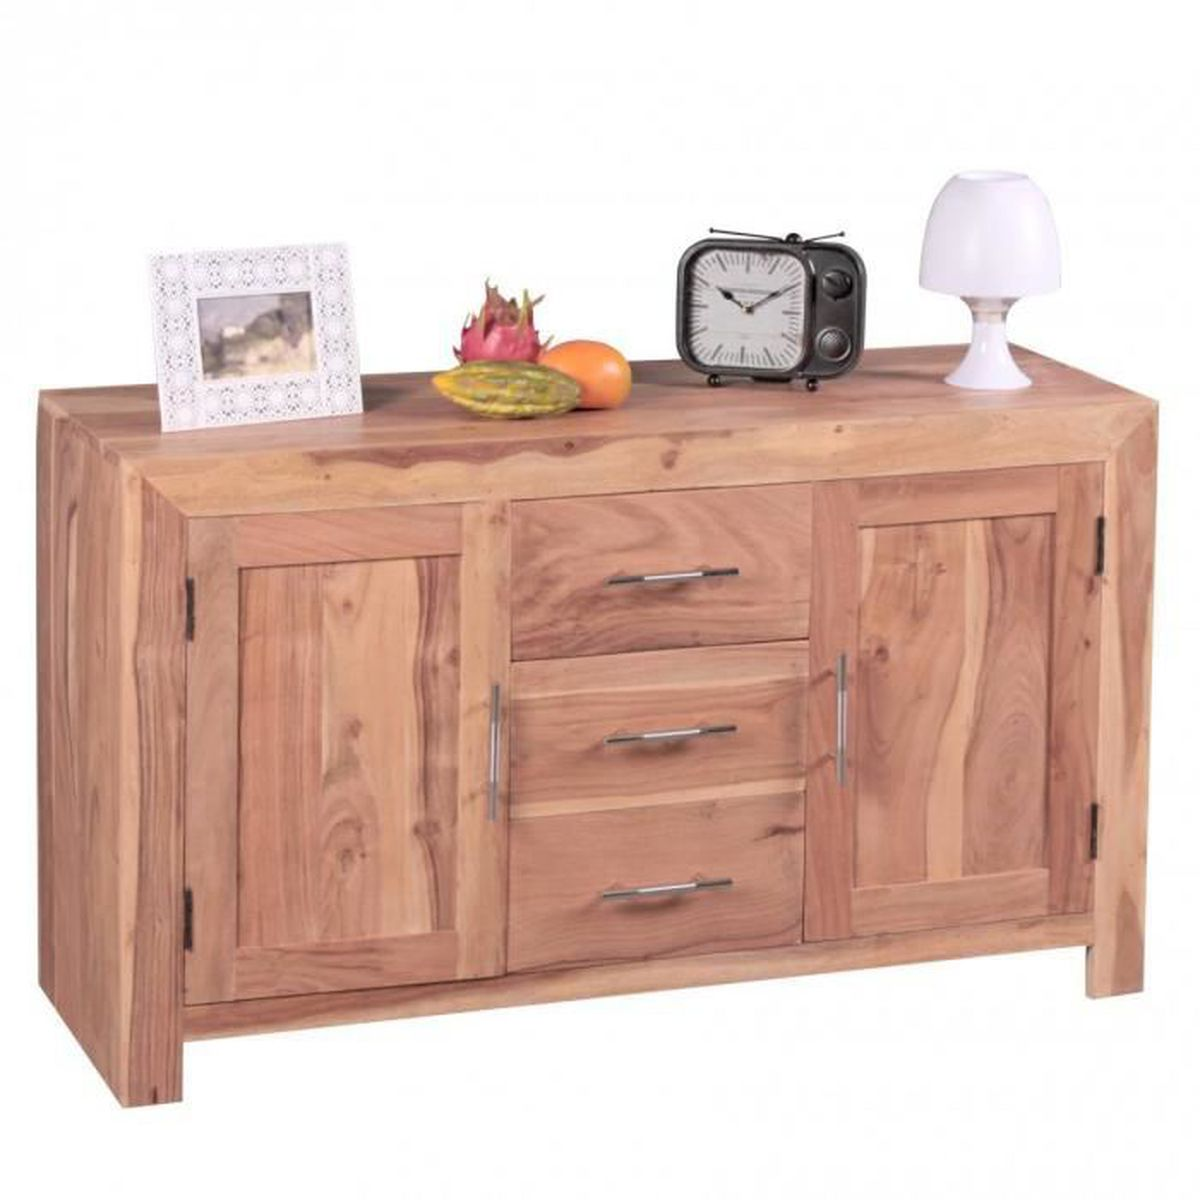 buffet en bois massif acacia poitrine 118cm avec 3 tiroirs 2 portes concevez style campagnard. Black Bedroom Furniture Sets. Home Design Ideas